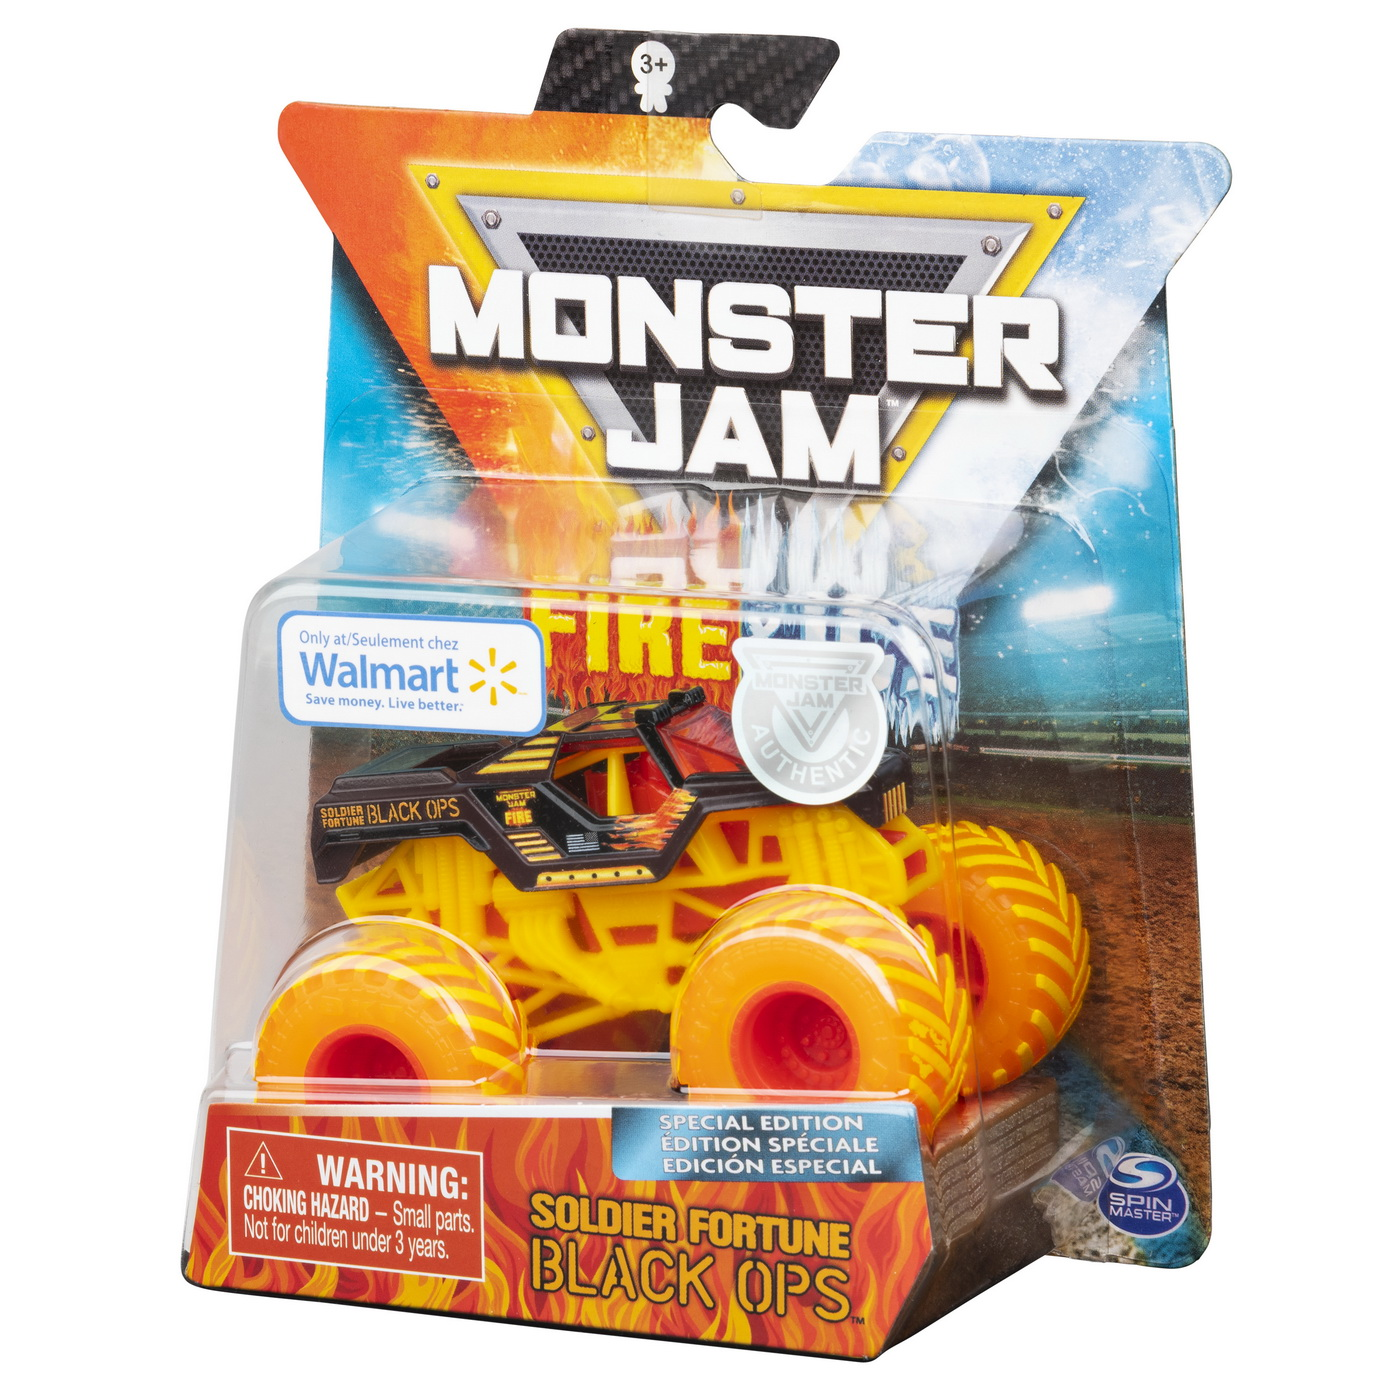 Masinuta Metalica Fire and Ice Soldier Fortune Black OPS | Monster Jam